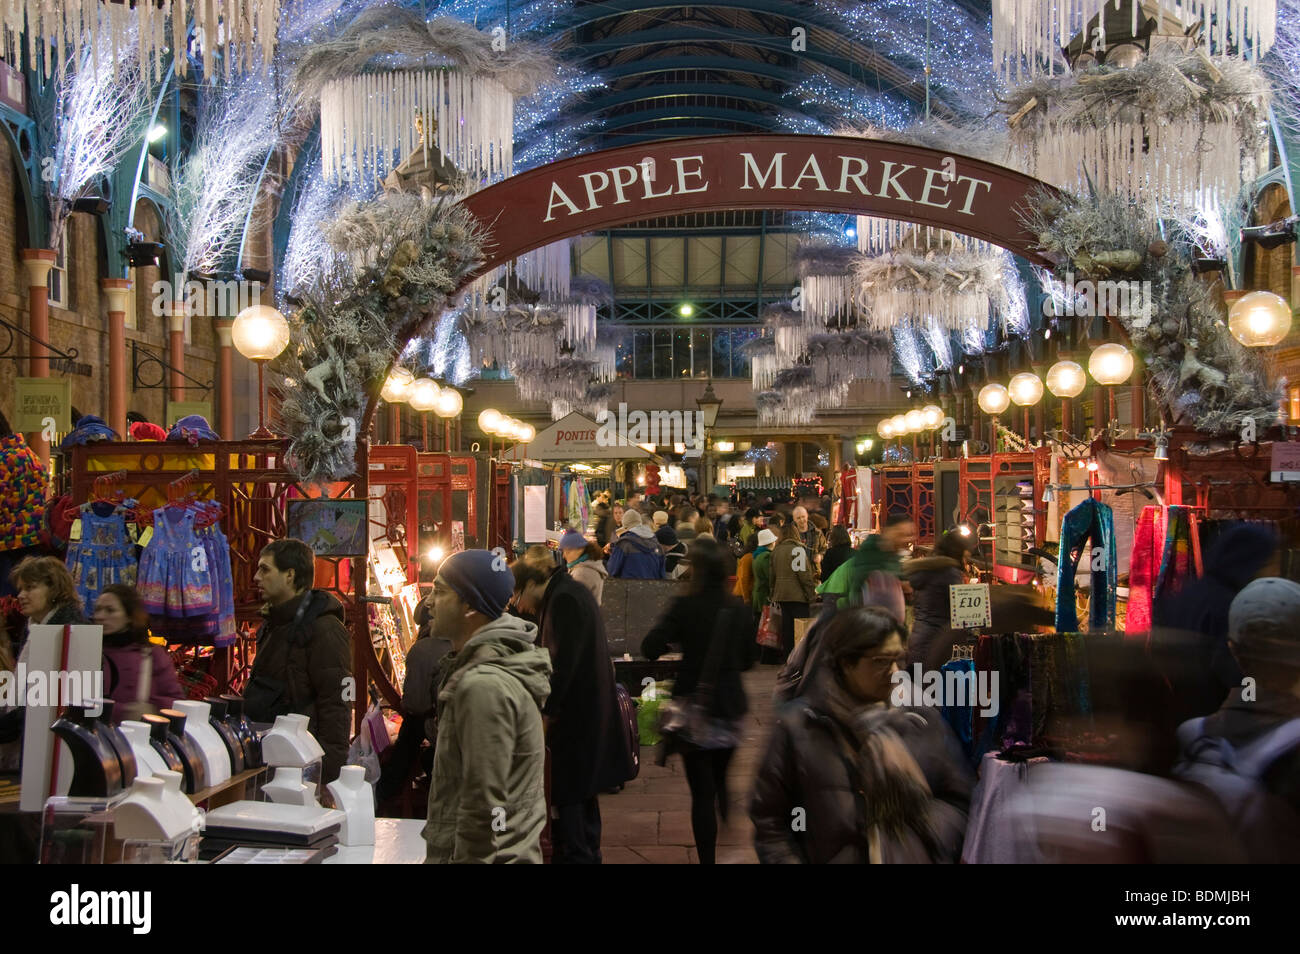 Pleasant English Garden Christmas Market Stock Photos  English Garden  With Interesting Christmas Shopping In The Apple Market At Covent Garden London  Stock  Image With Astounding Garden Well Also Bennetts Water Gardens Weymouth In Addition Home Base Garden Furniture Sale And Gardening Scotland As Well As Cadbury Garden Centre Ice Skating Additionally Garden Of Edin From Alamycom With   Interesting English Garden Christmas Market Stock Photos  English Garden  With Astounding Christmas Shopping In The Apple Market At Covent Garden London  Stock  Image And Pleasant Garden Well Also Bennetts Water Gardens Weymouth In Addition Home Base Garden Furniture Sale From Alamycom